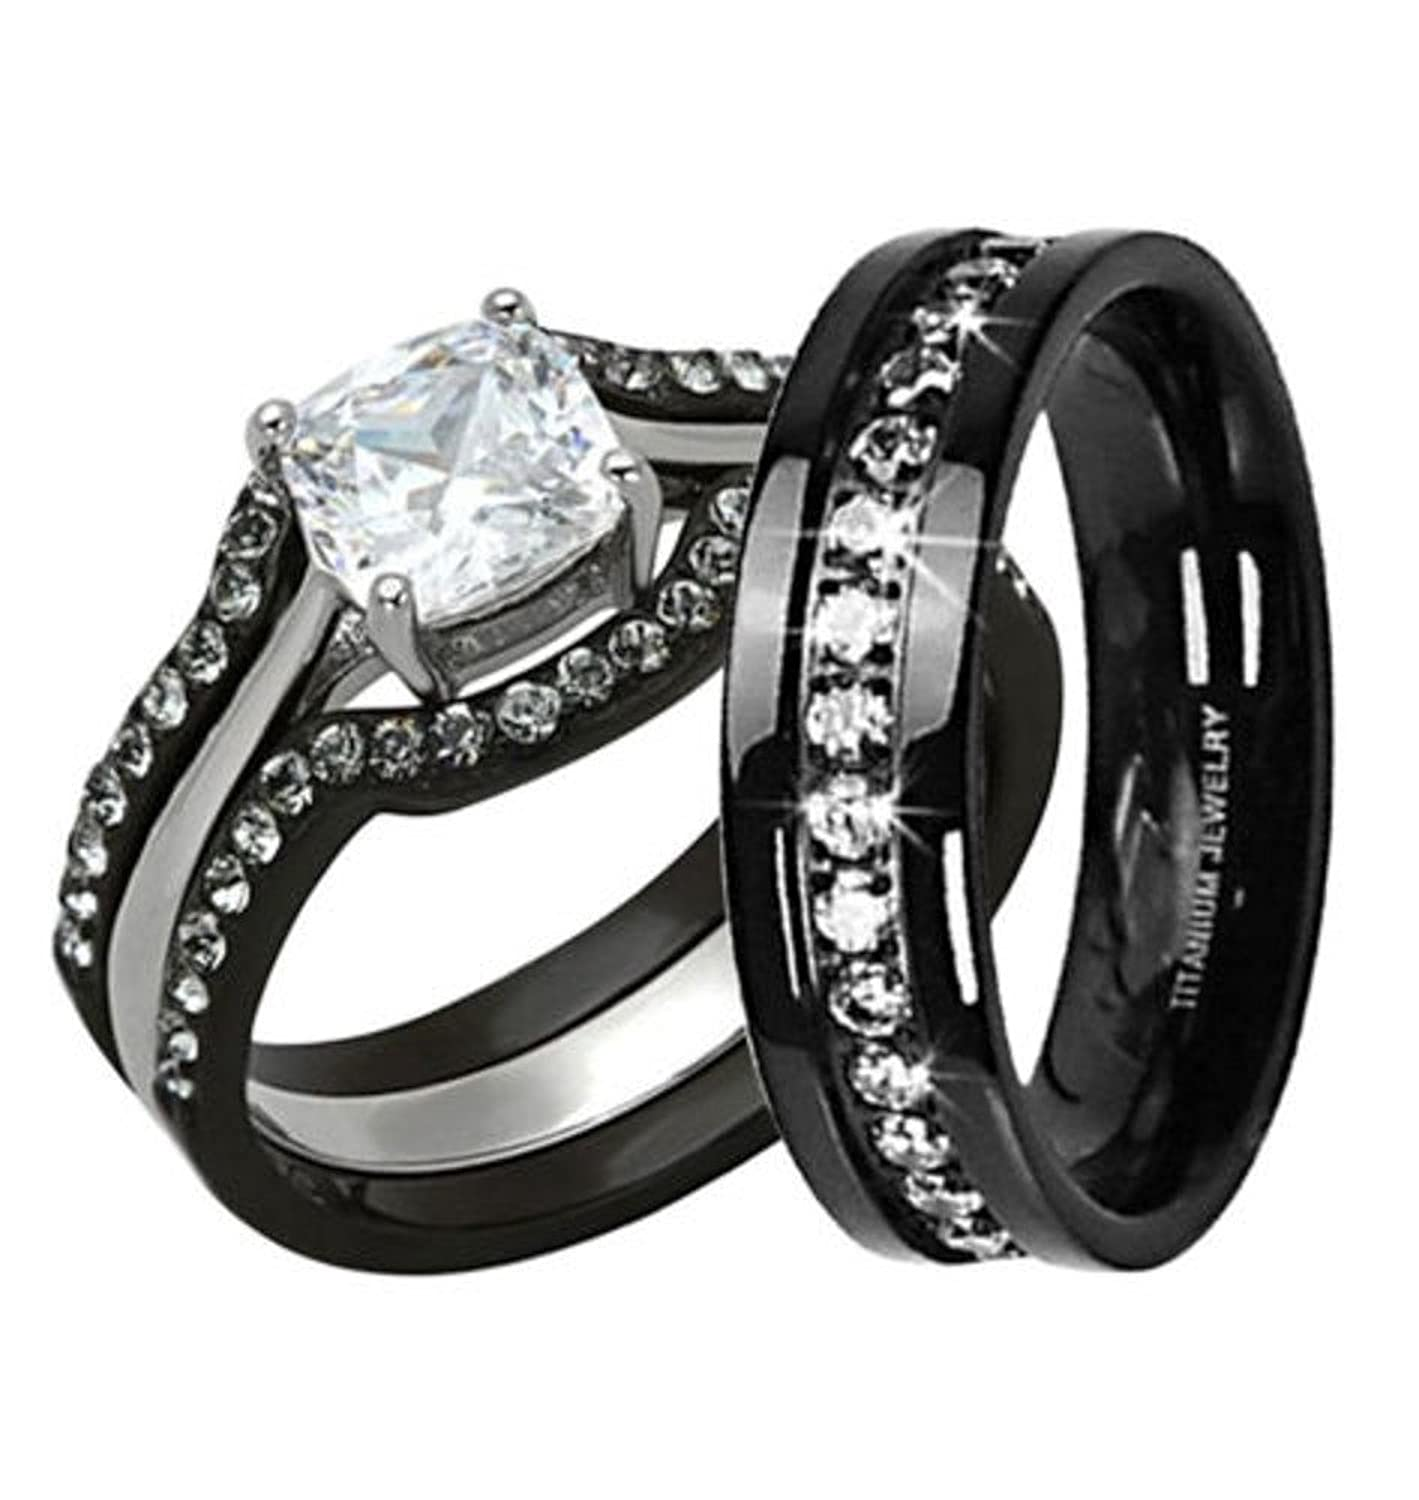 amazoncom his hers 4pc black stainless steel titanium wedding engagement ring band set size womens 05 mens 06 jewelry - Black Wedding Rings Sets